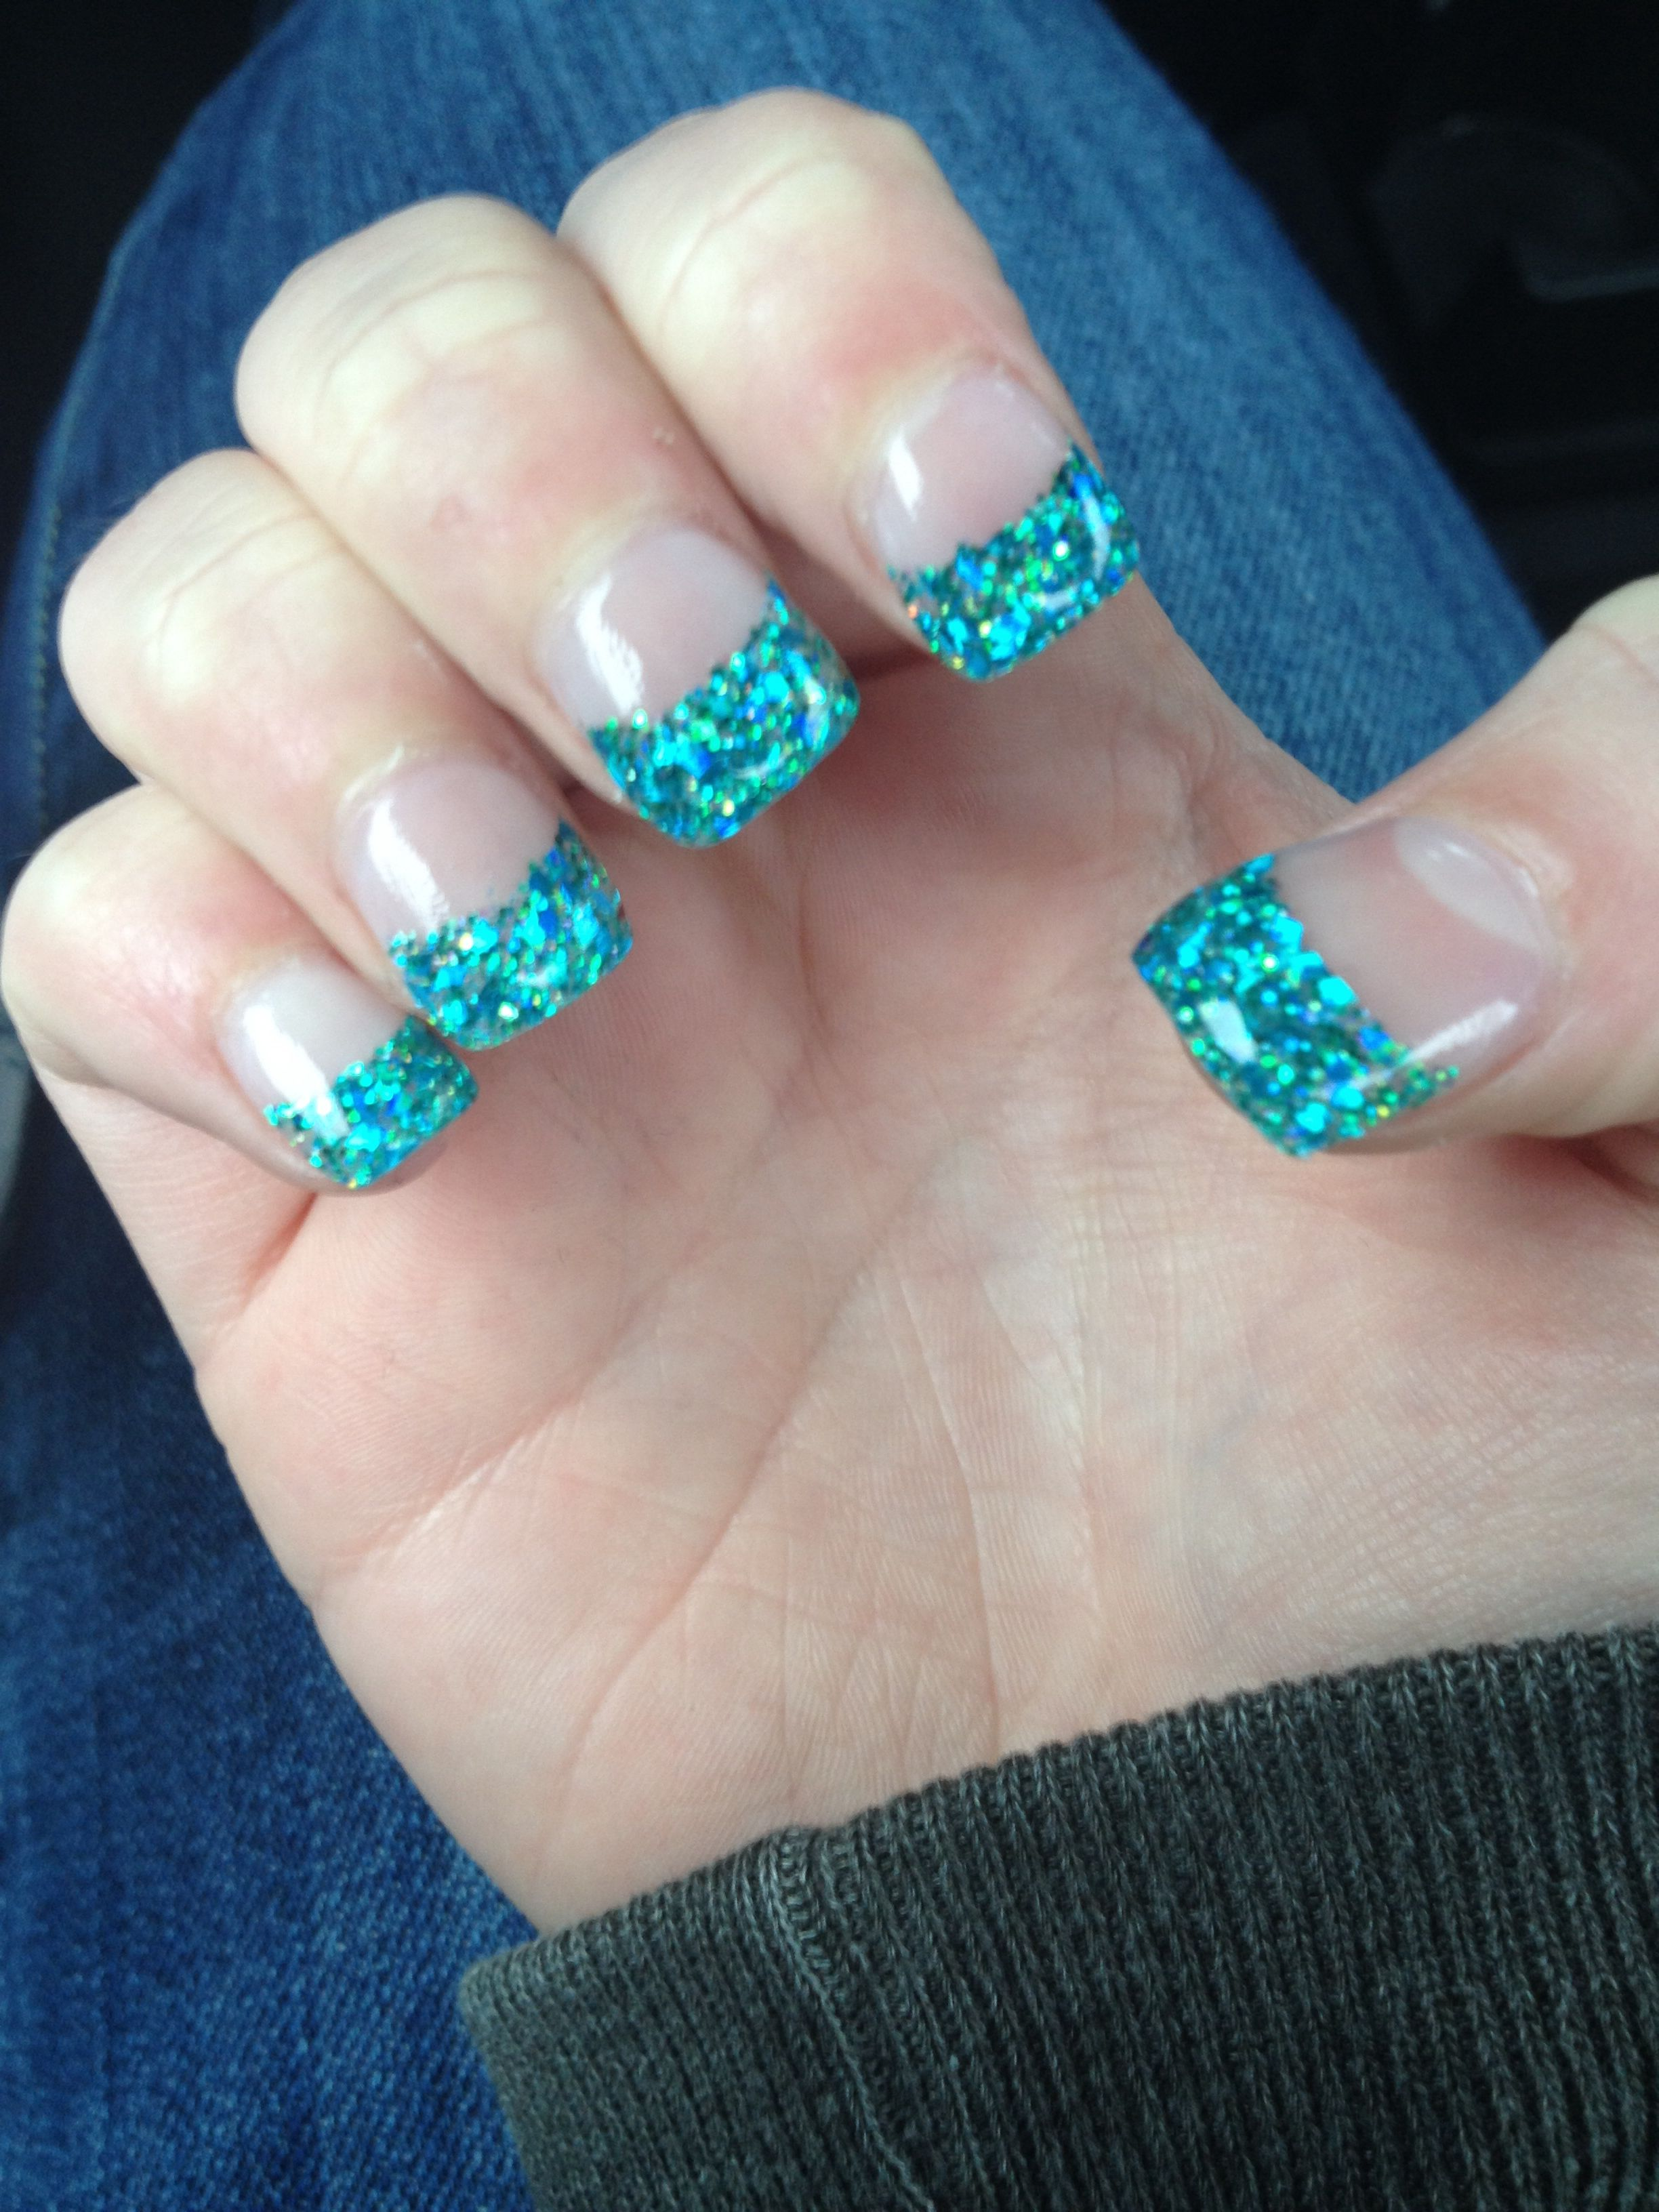 Blue acrylic nails for prom :) | Prom! | Pinterest | Blue acrylic ...